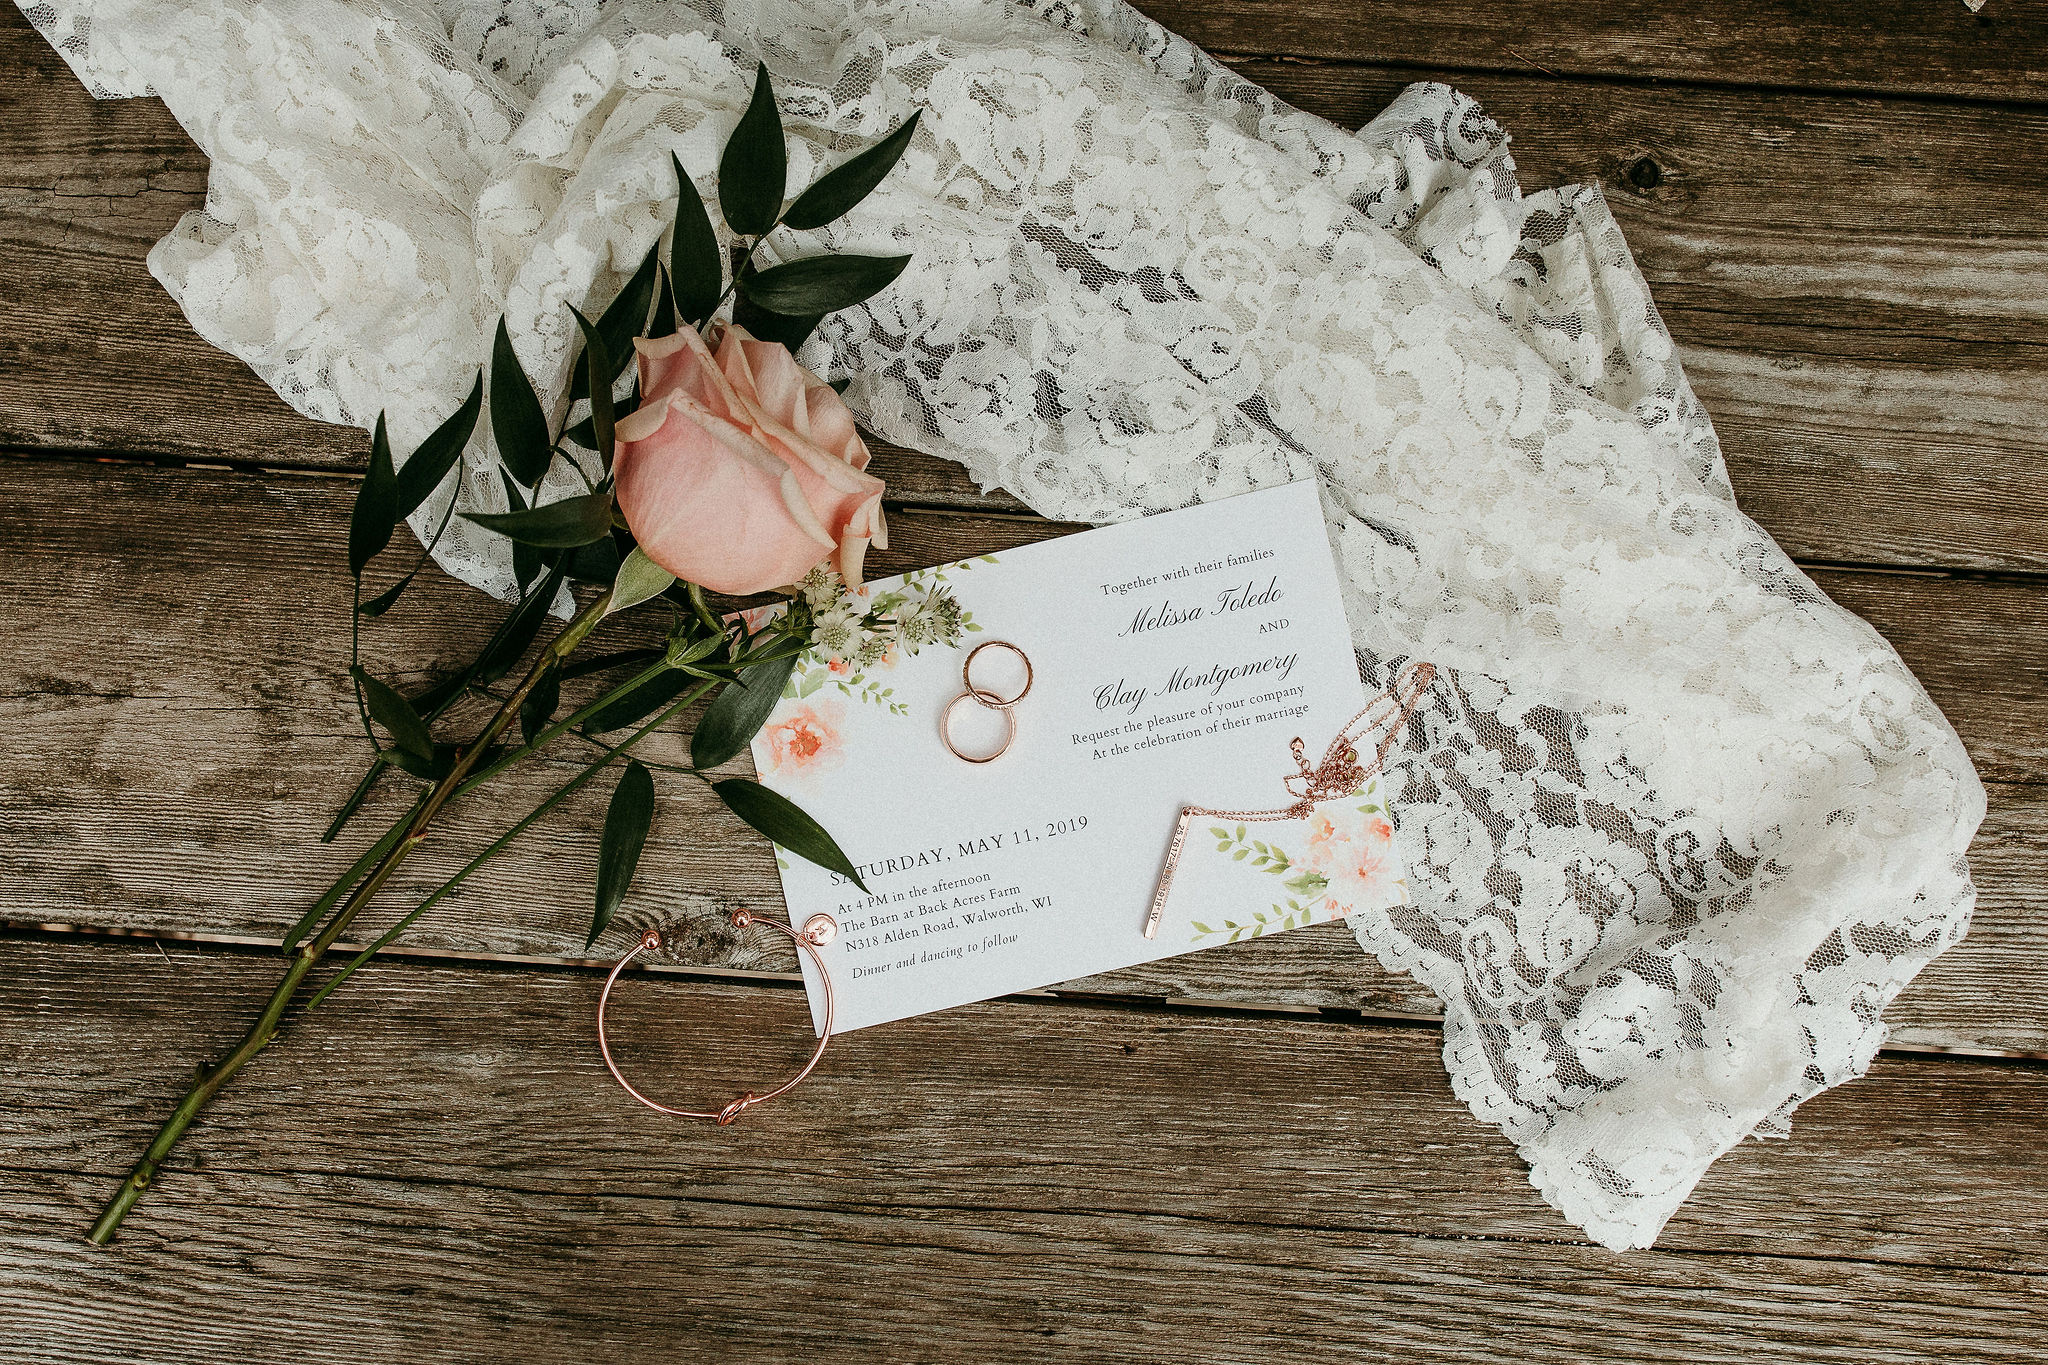 Wedding Details Invitation Ring Flowers